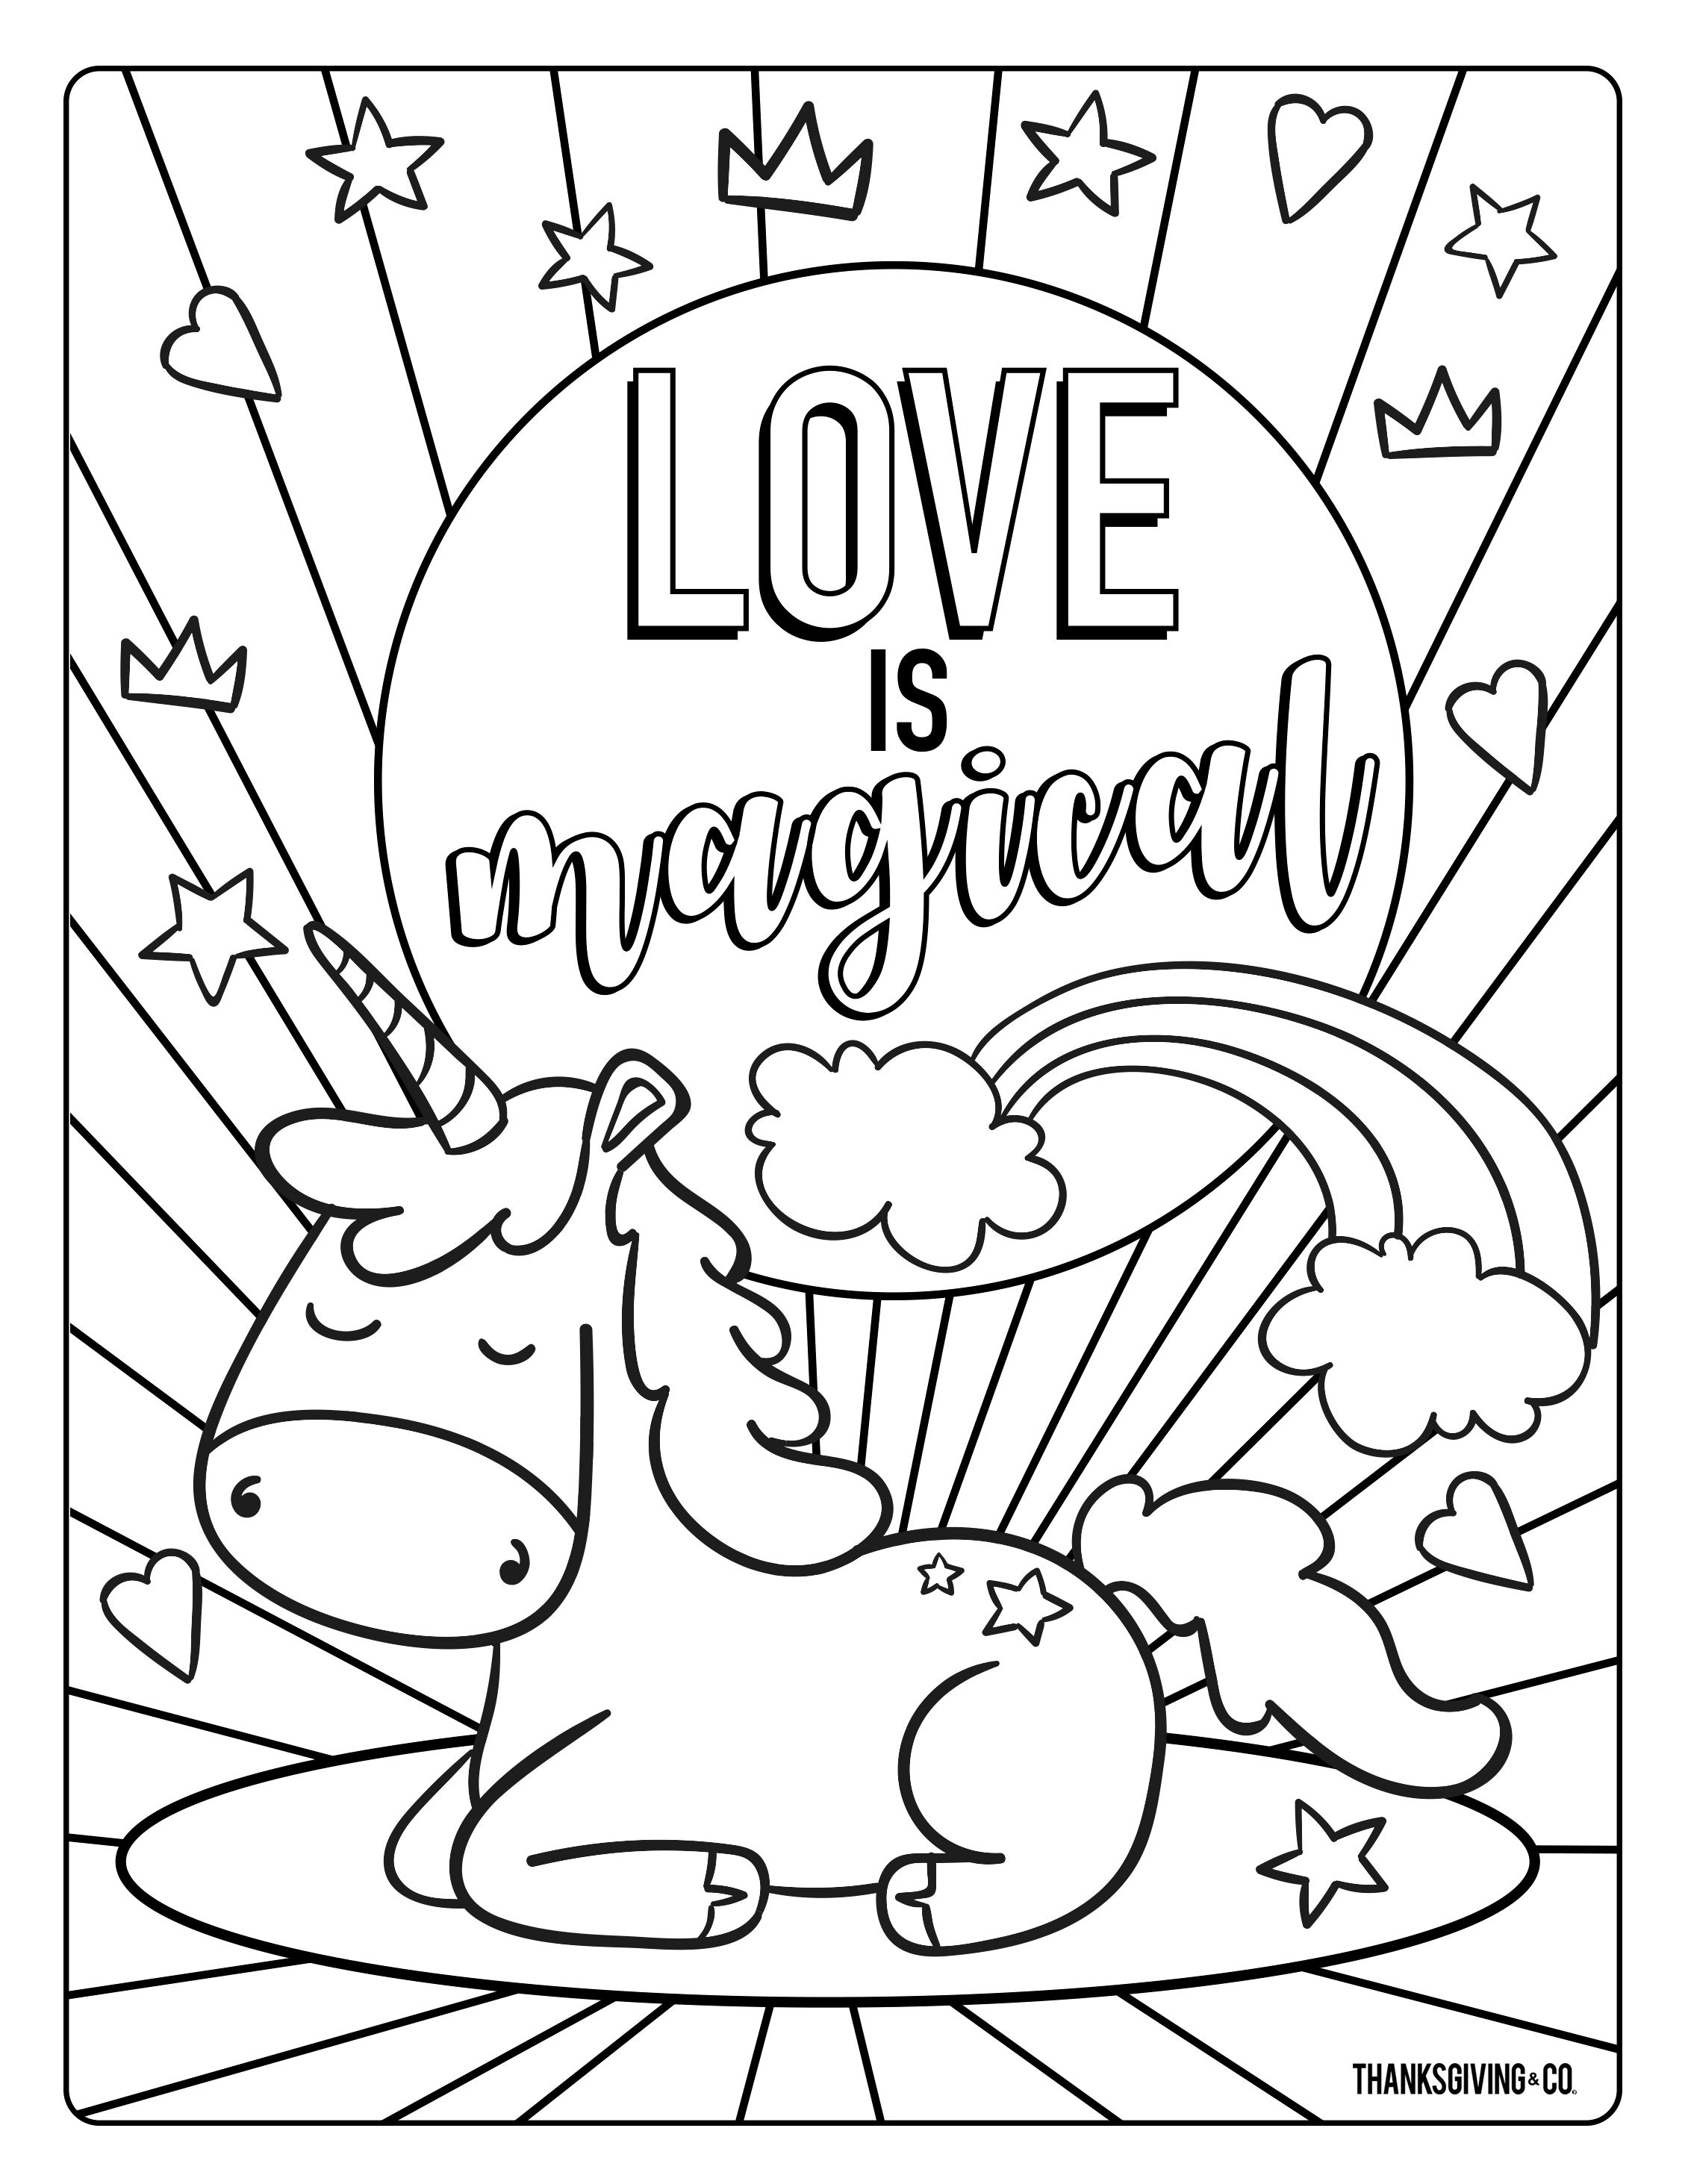 4 Free Valentine S Day Coloring Pages For Kids Valentines Day Coloring Page Printable Valentines Coloring Pages Crayola Coloring Pages